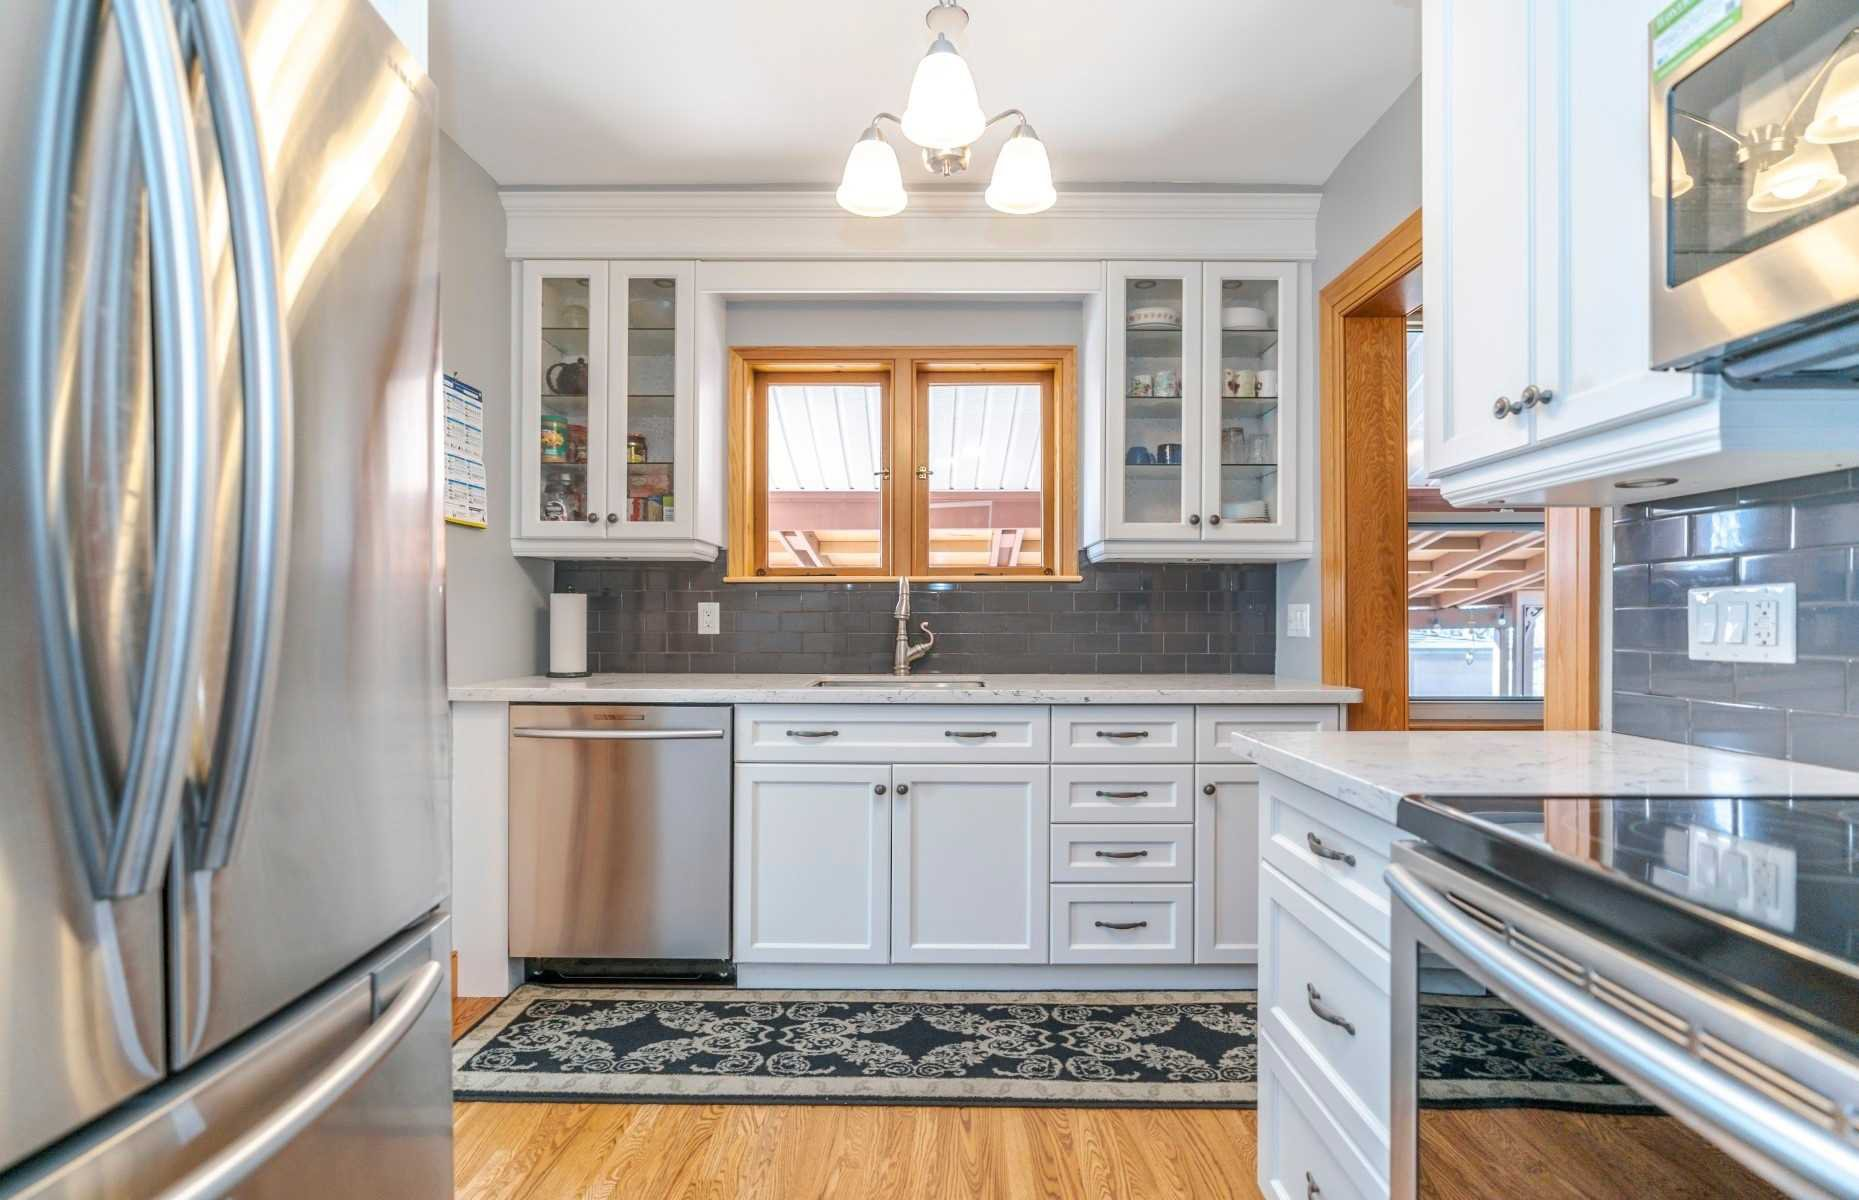 Photo 9: Photos: 1009 S Centre Street in Whitby: Downtown Whitby House (Bungalow) for sale : MLS®# E4714116